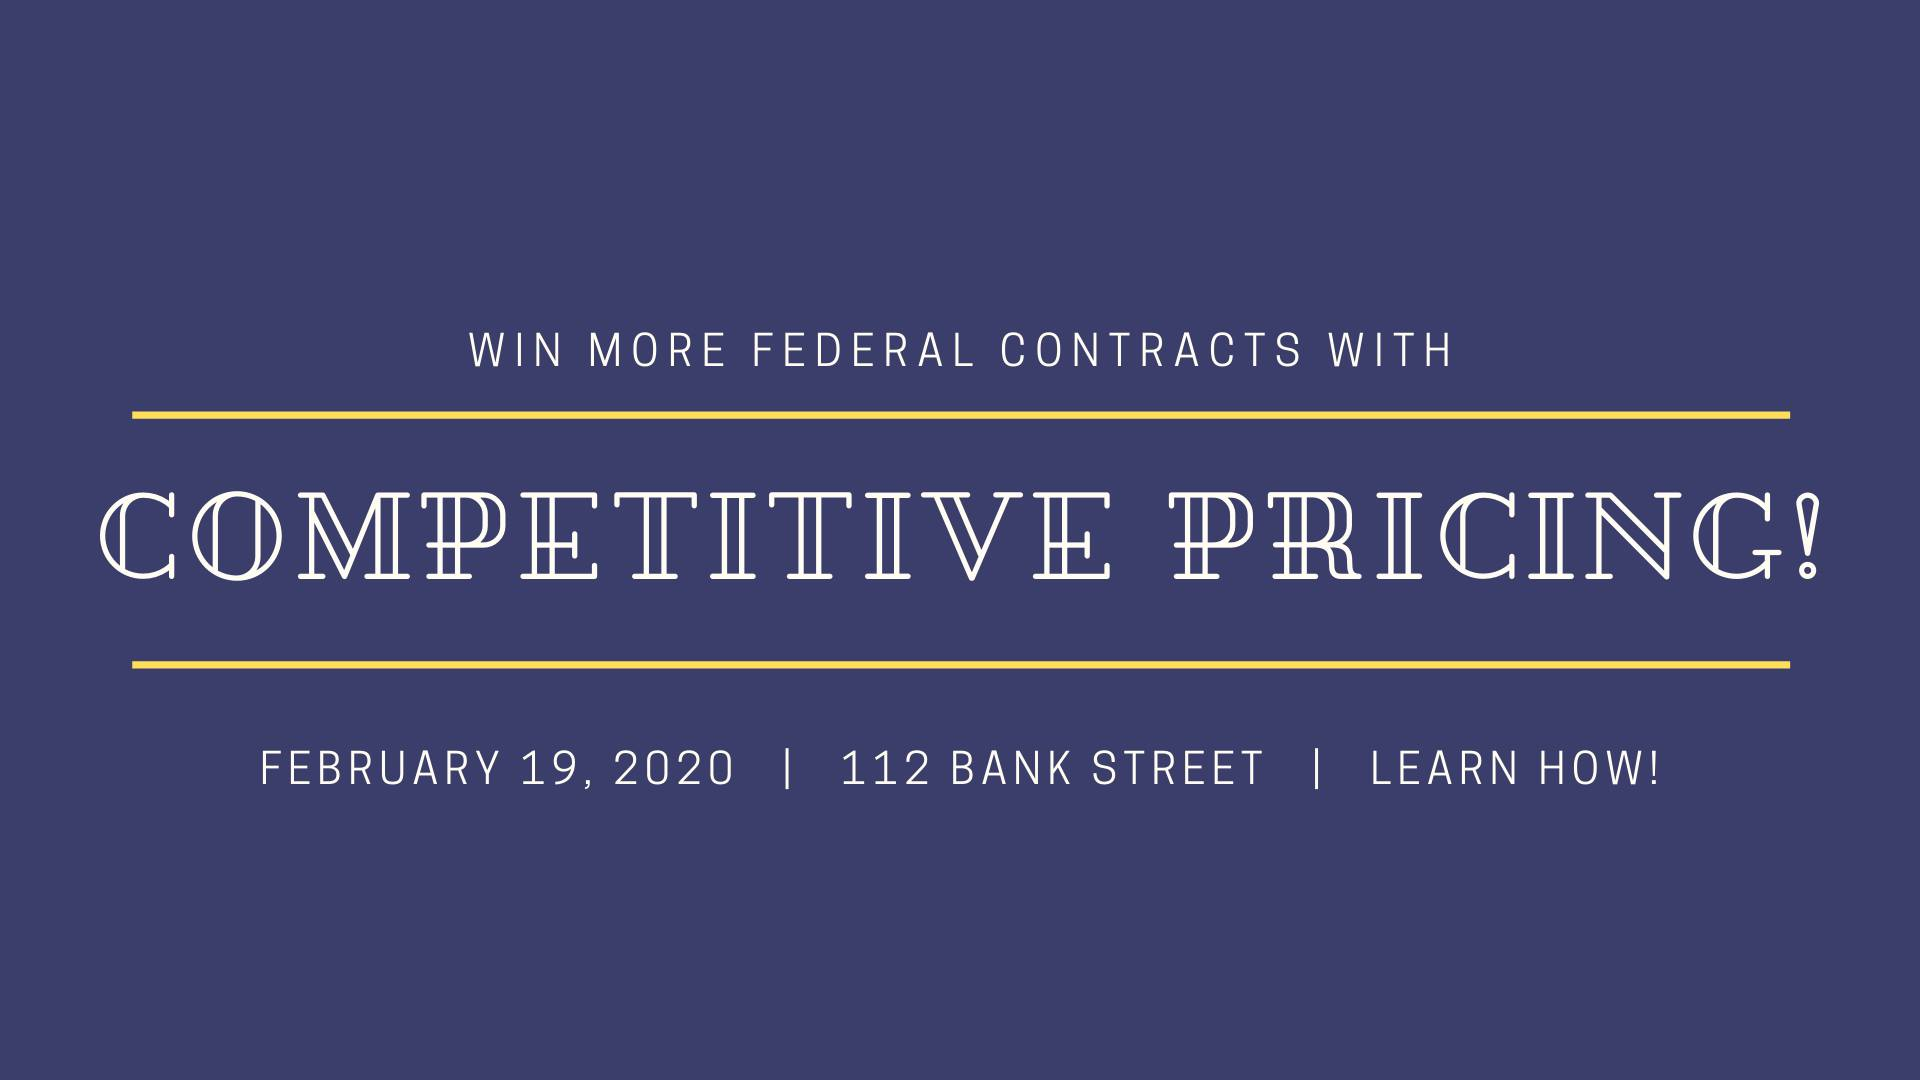 Win More Federal Contracts with competitive pricing!